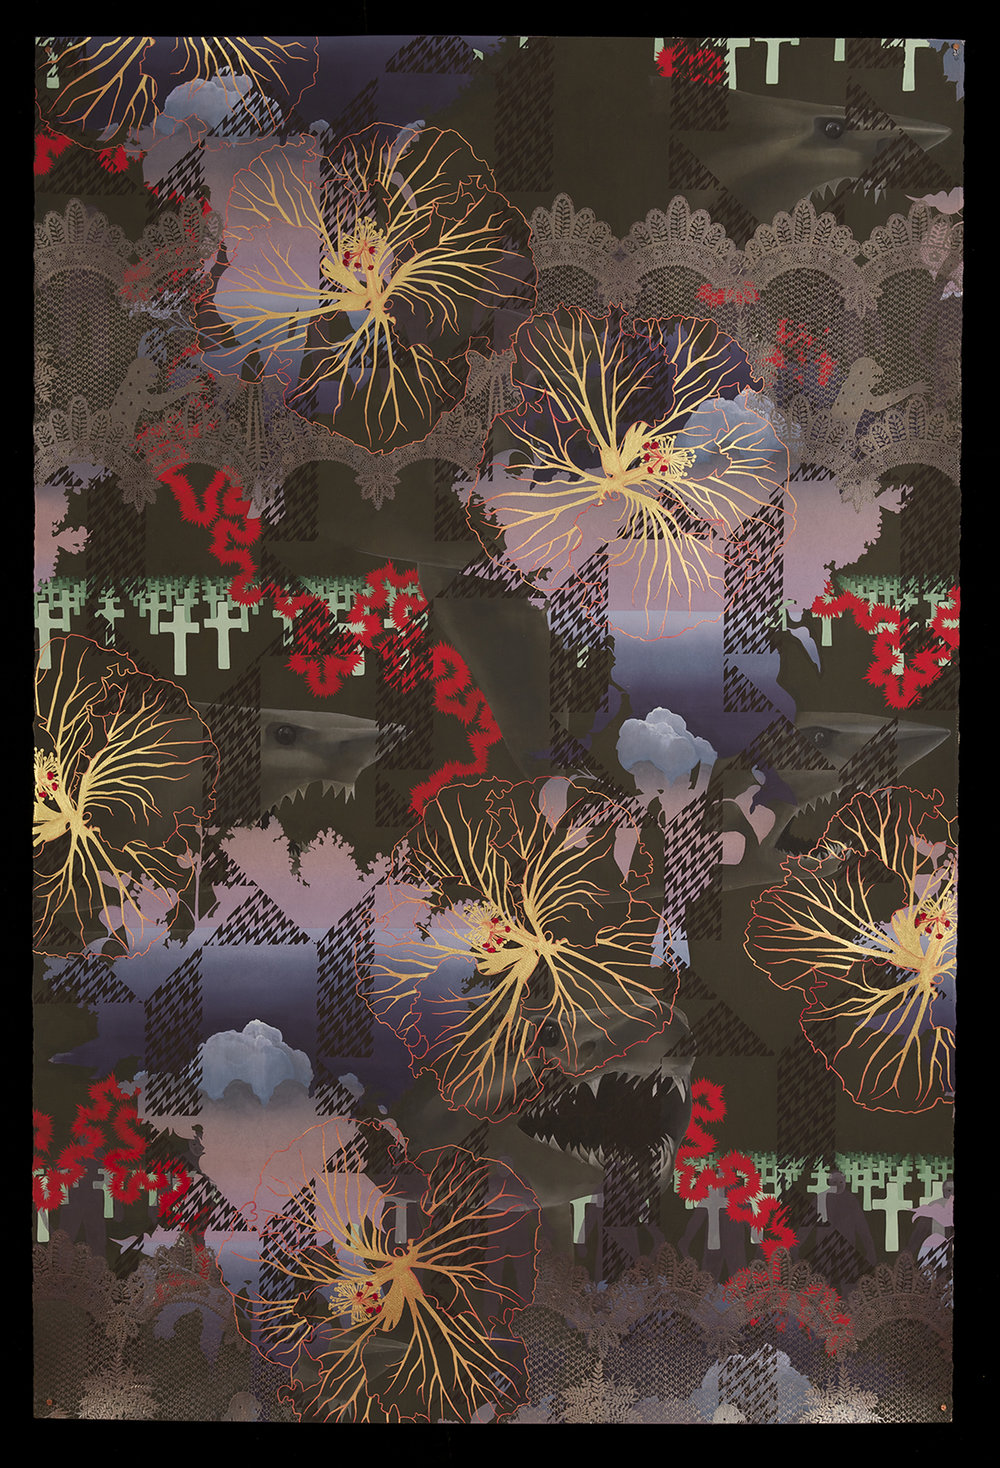 Zoe Pettijohn Schade/ Dark Harbinger/ Gouache with Gold and Silver Leaf on Paper 60 x 40 inches/ 2011